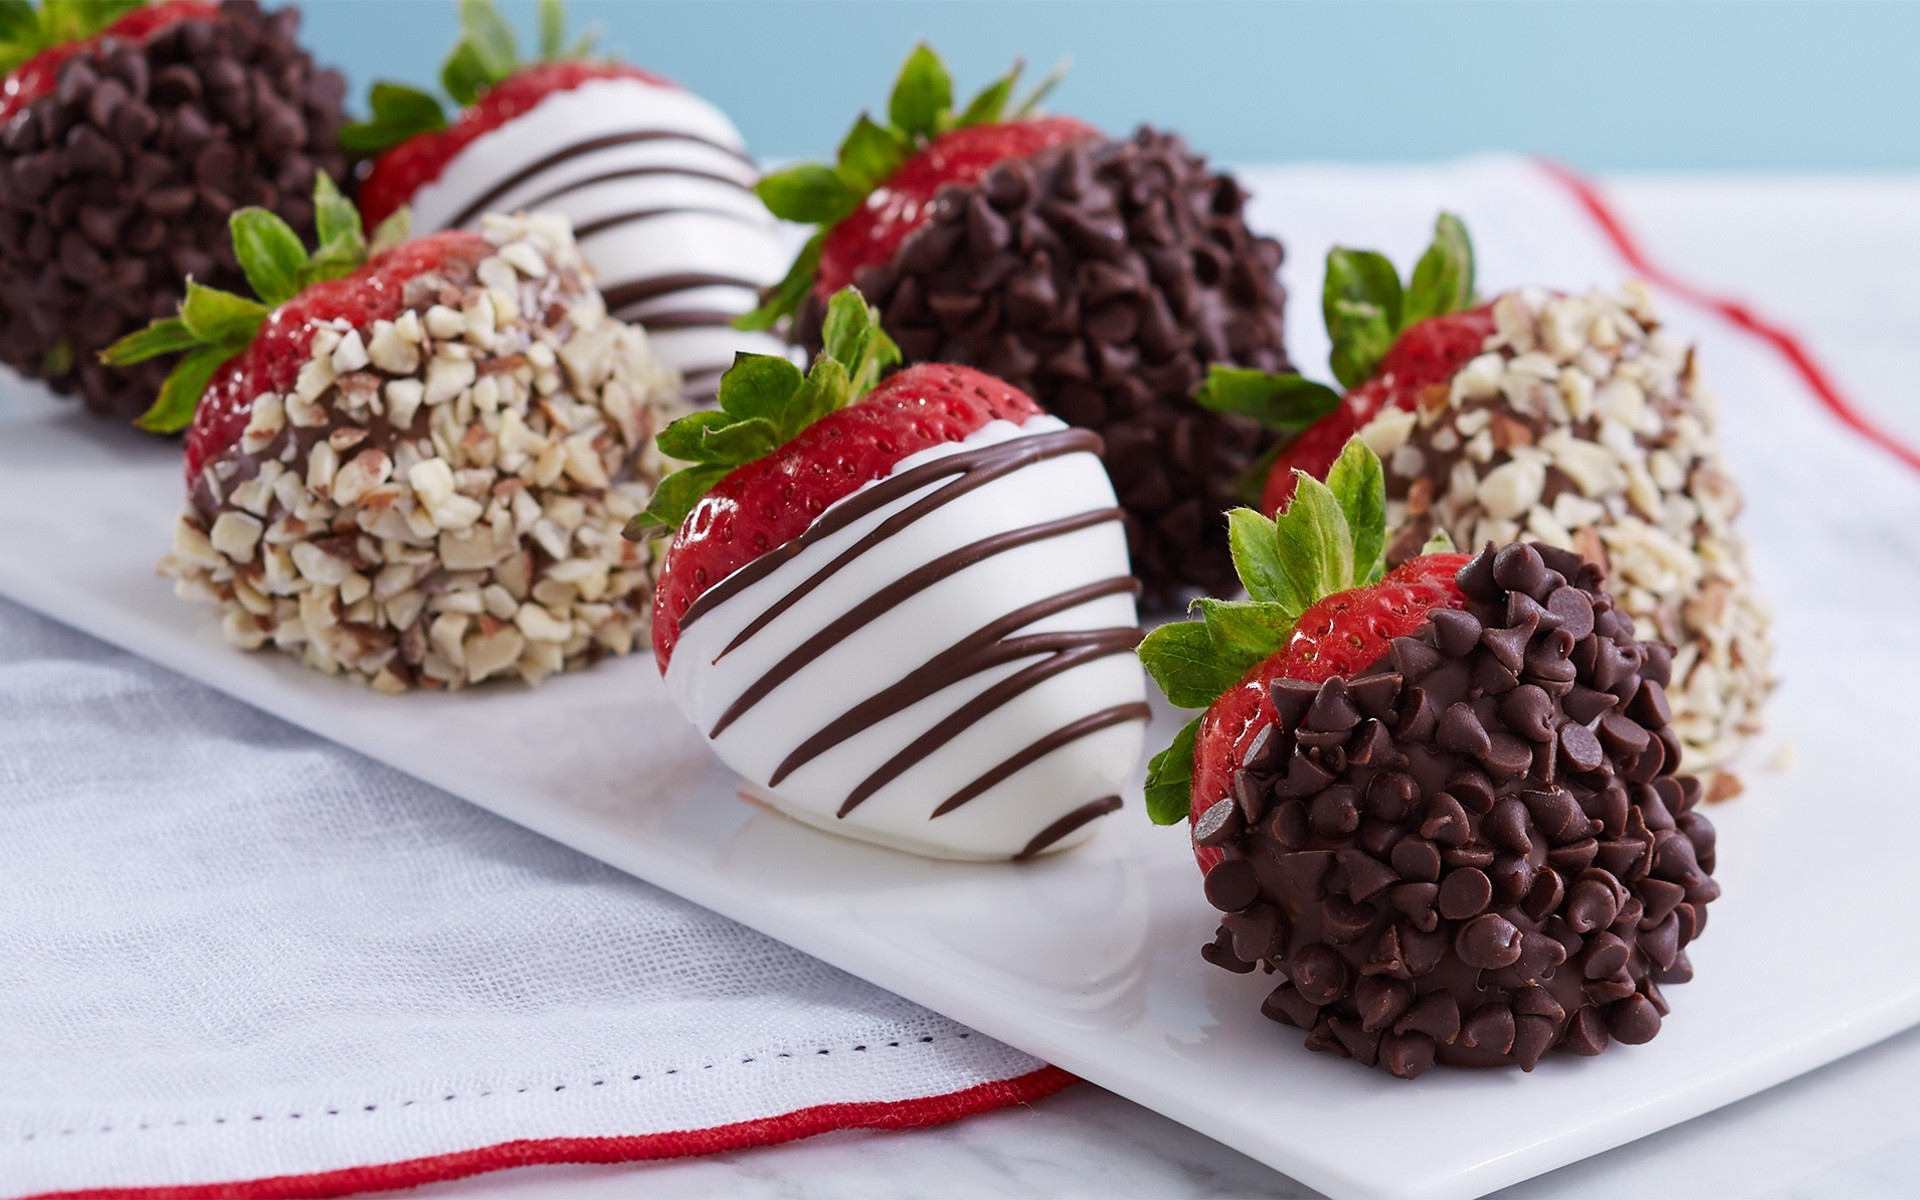 Strawberry Cake With Nuts